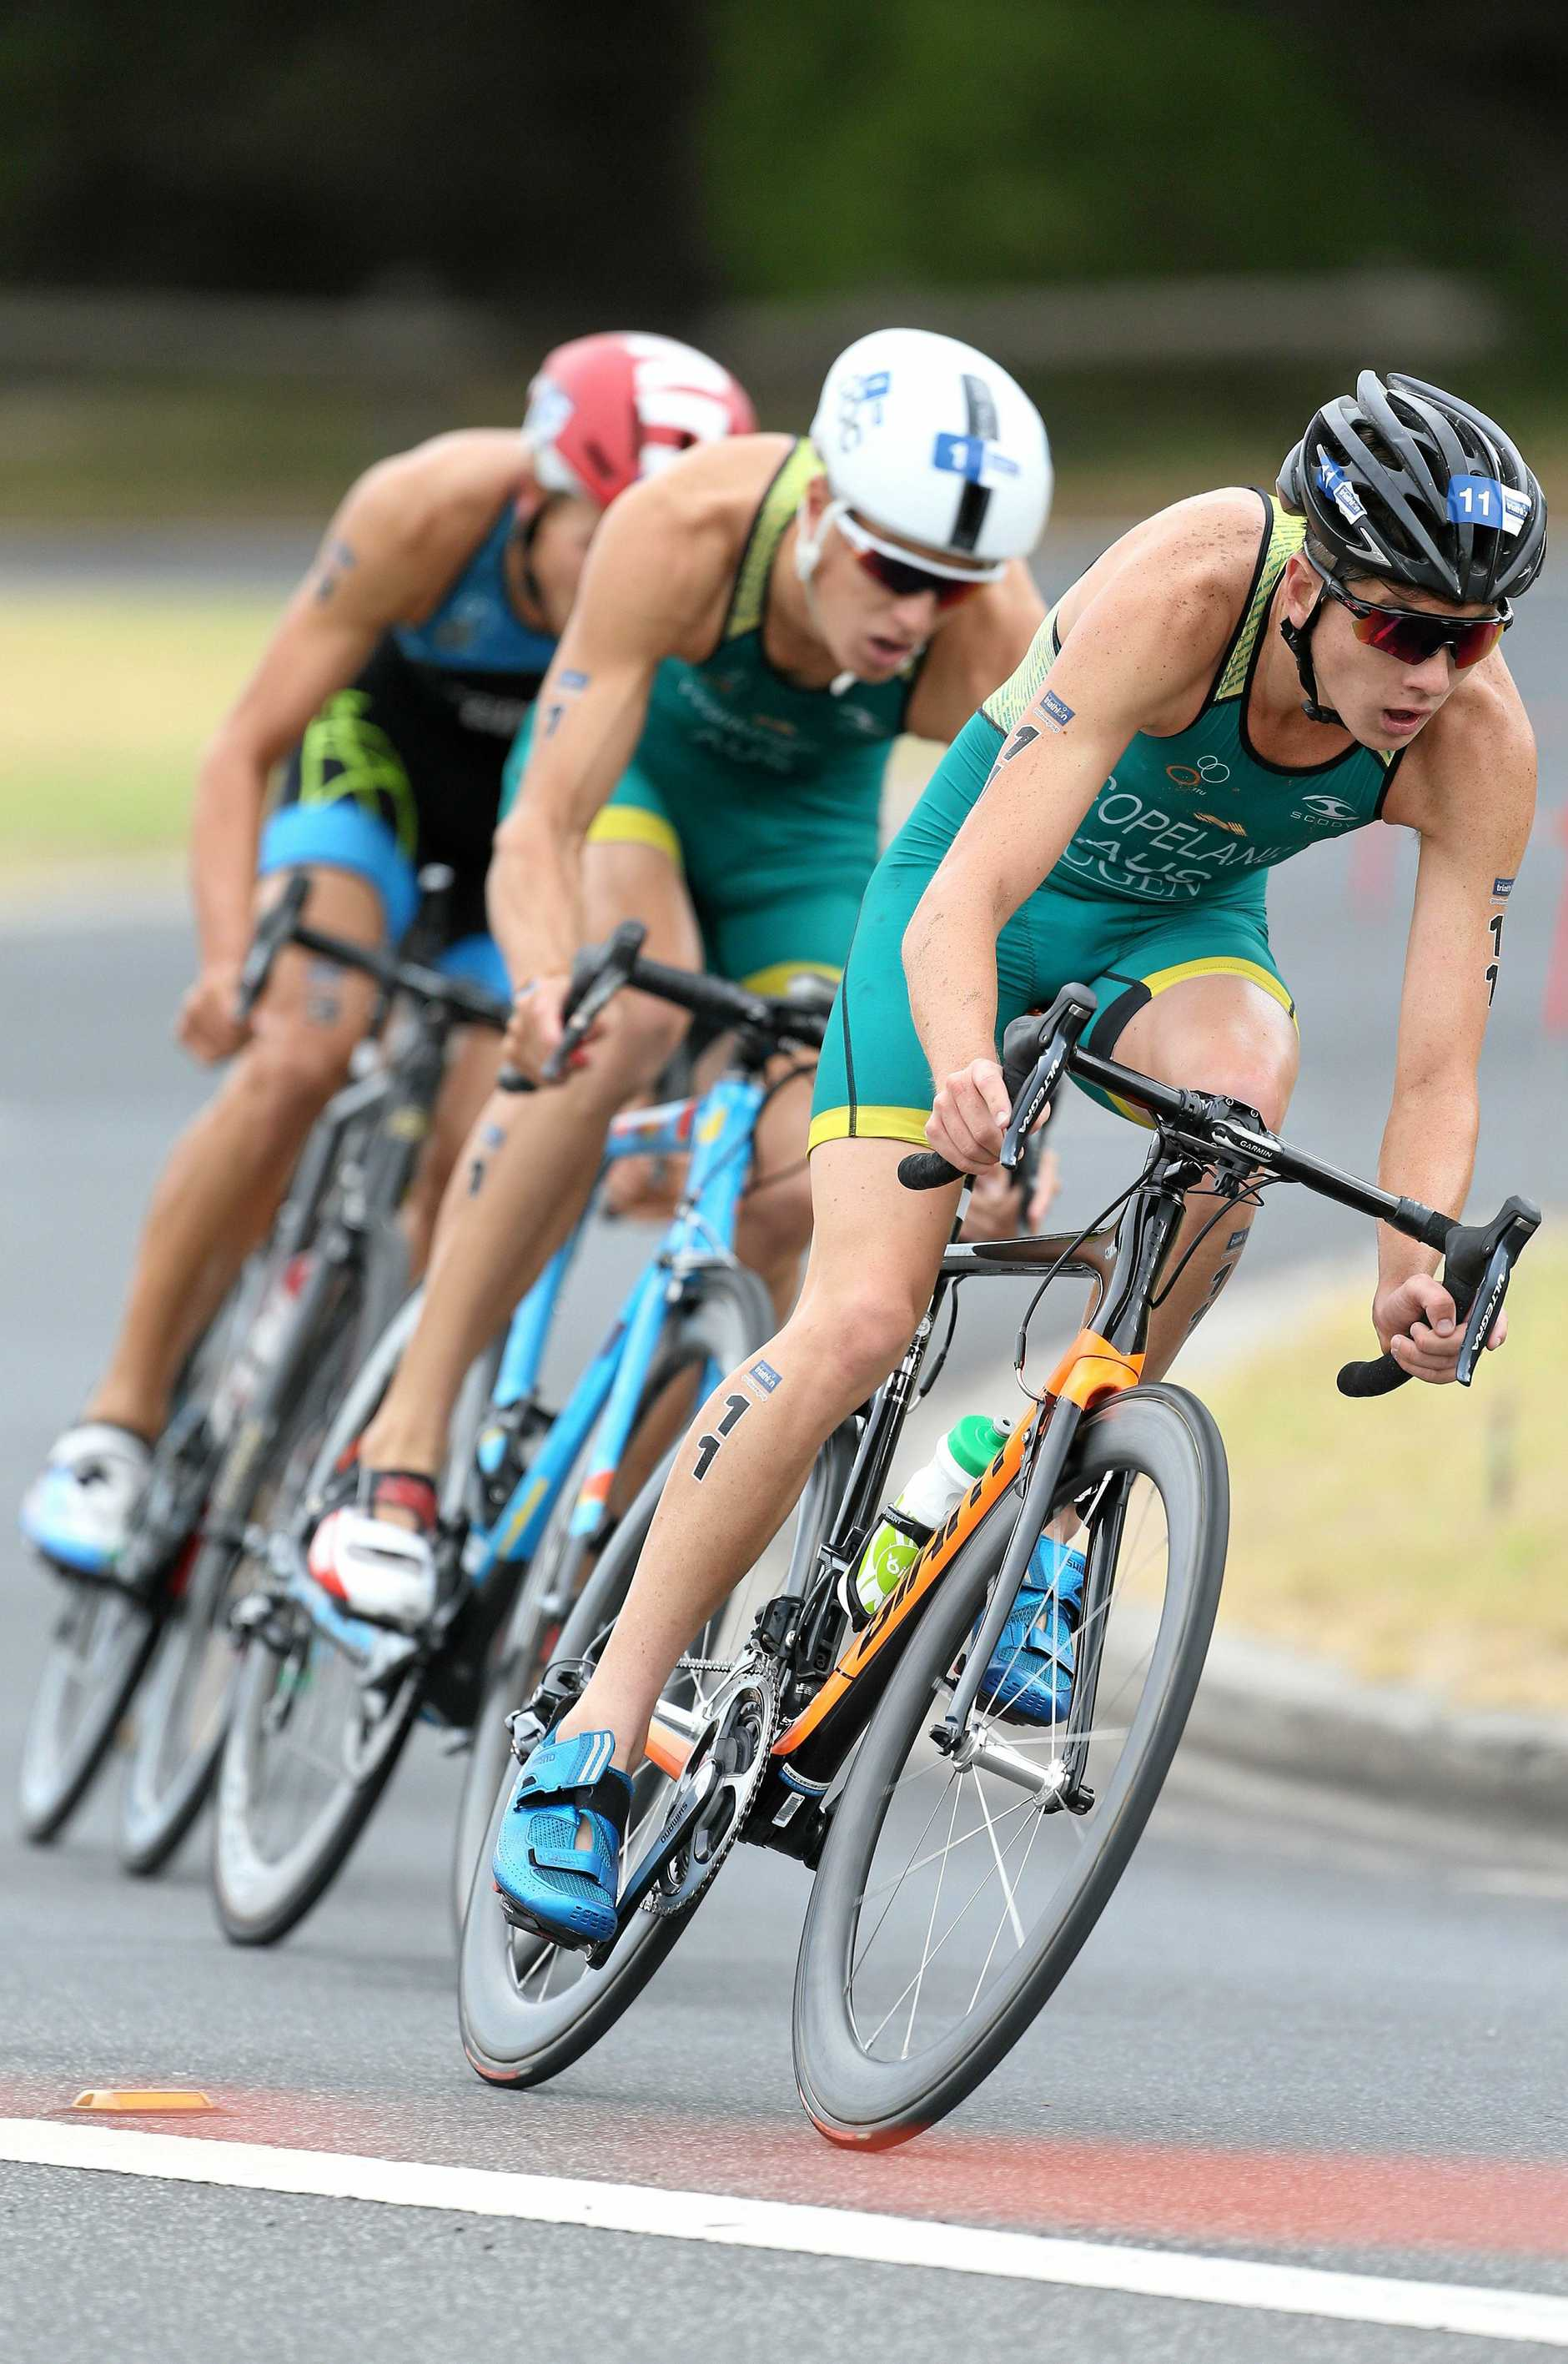 AMID THE FIELD: Brandon Copeland, pictured racing at Devonport, will be among those competing in the elite men's race at Mooloolaba.